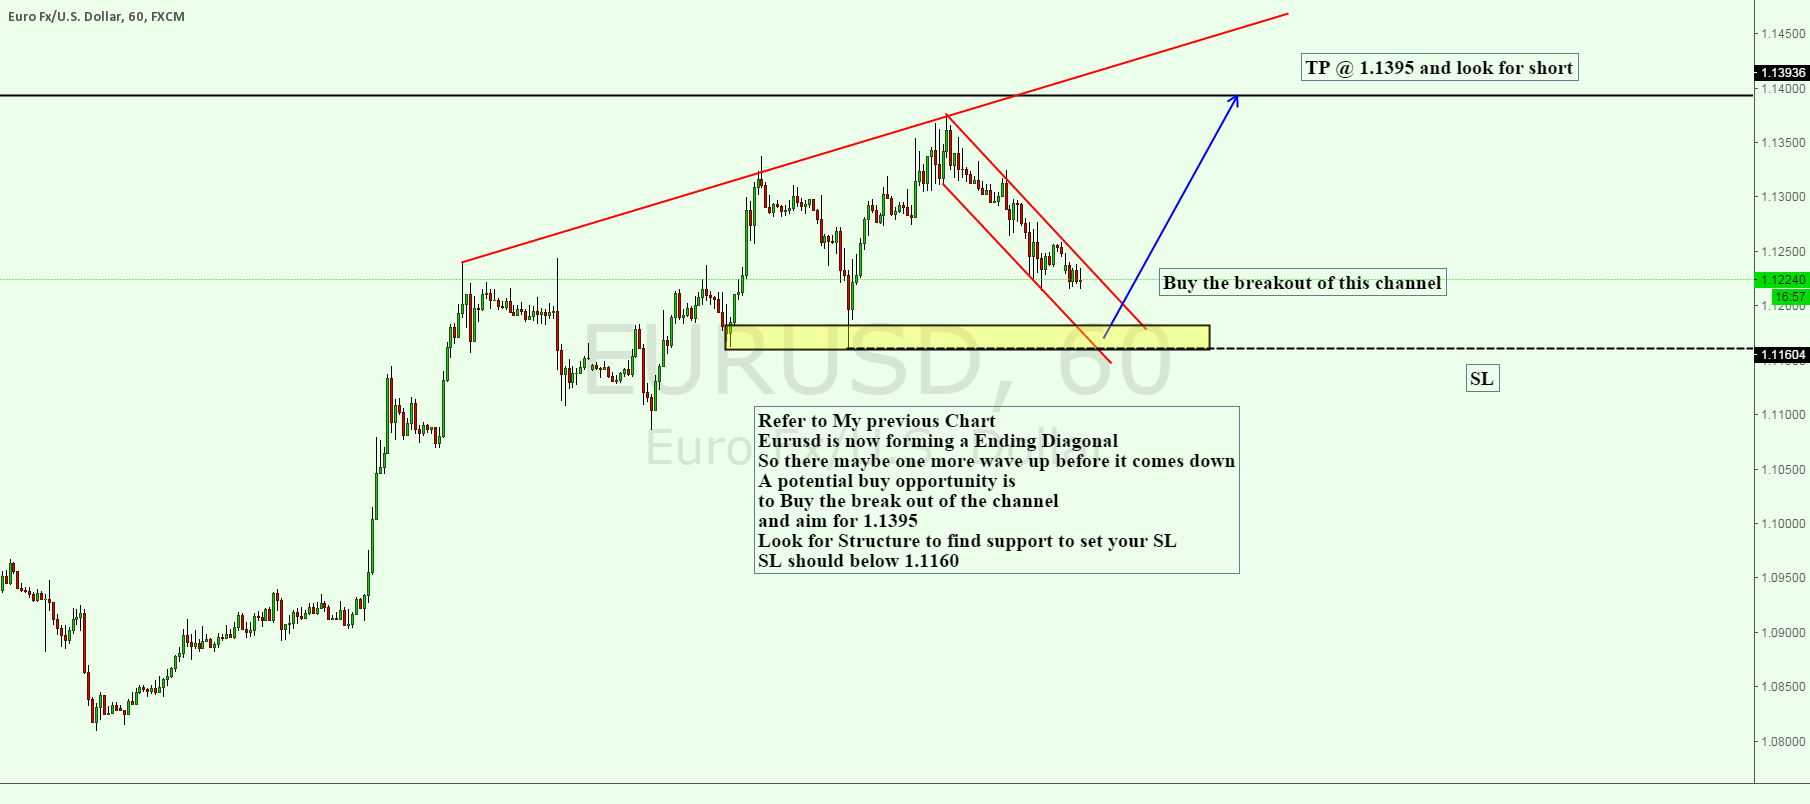 EURUSD 1H Chart buy the break out of the channel